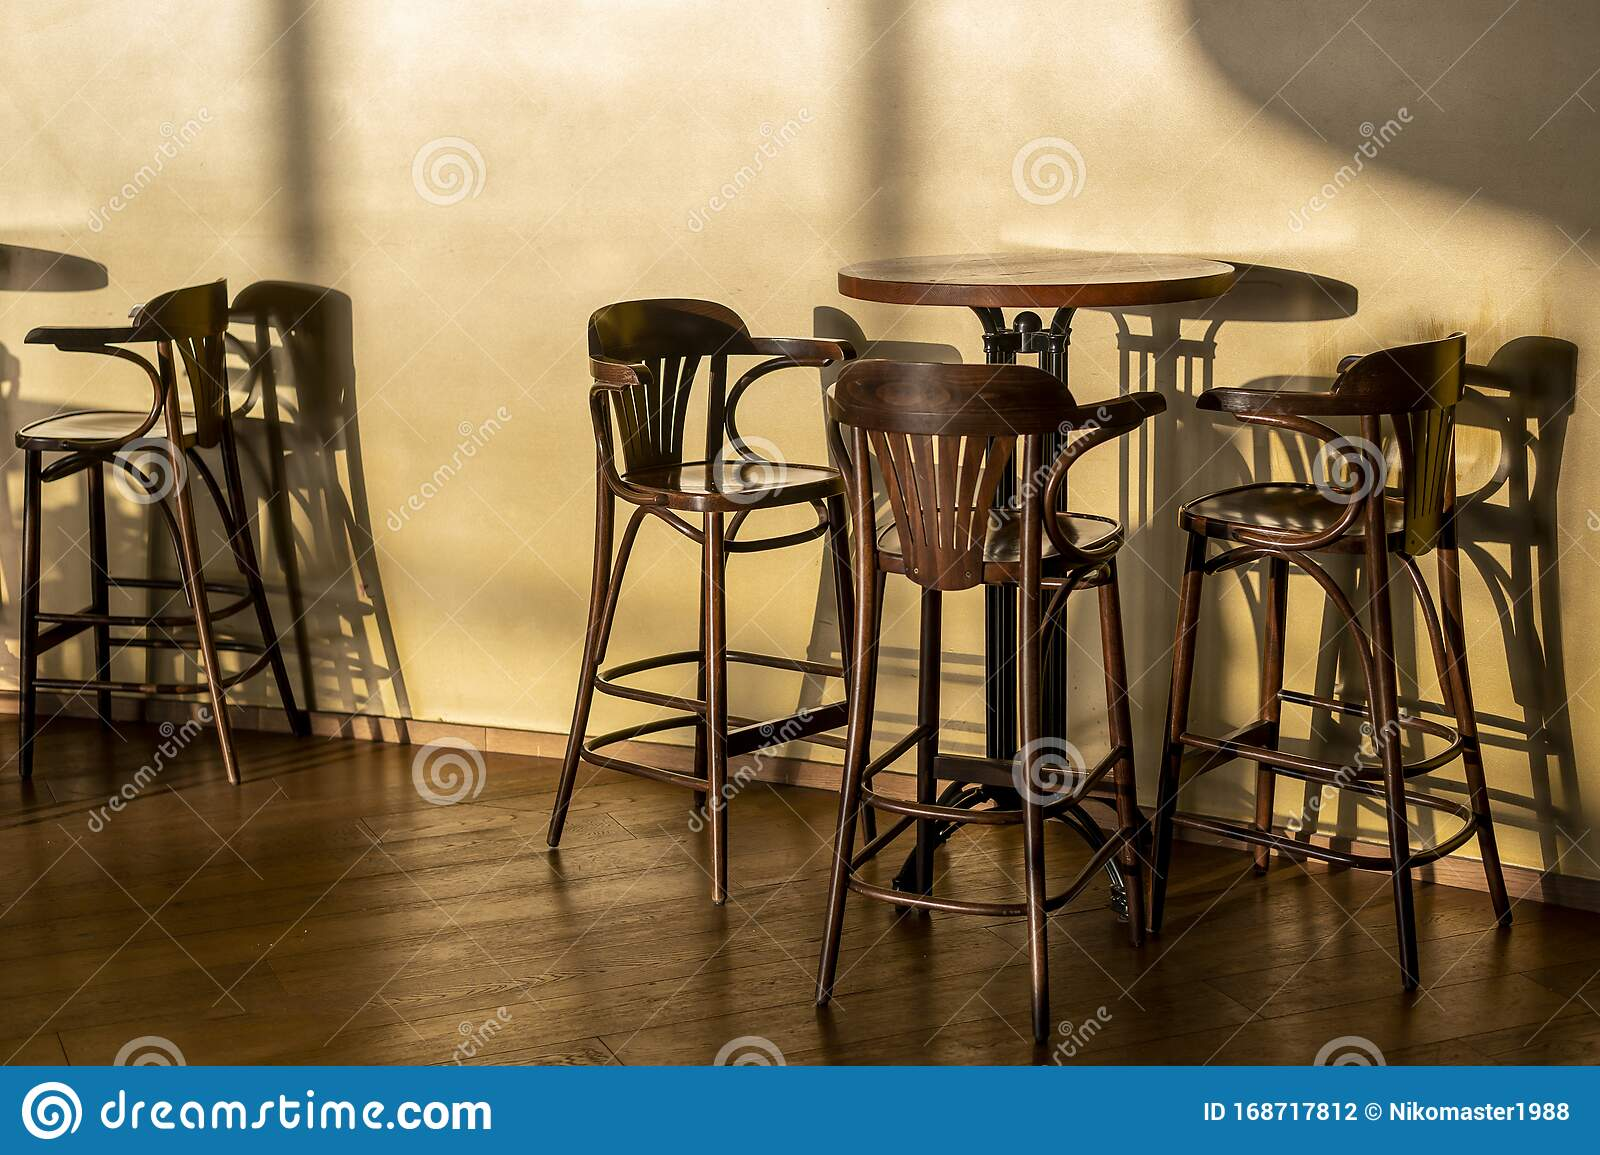 Picture of: Tall Vintage Wooden Table And Chairs Stand In A Cafe A Light Cool Shadow From Sunlight Reflects On The Wall And Floor A Clear Stock Photo Image Of Urban Vacation 168717812